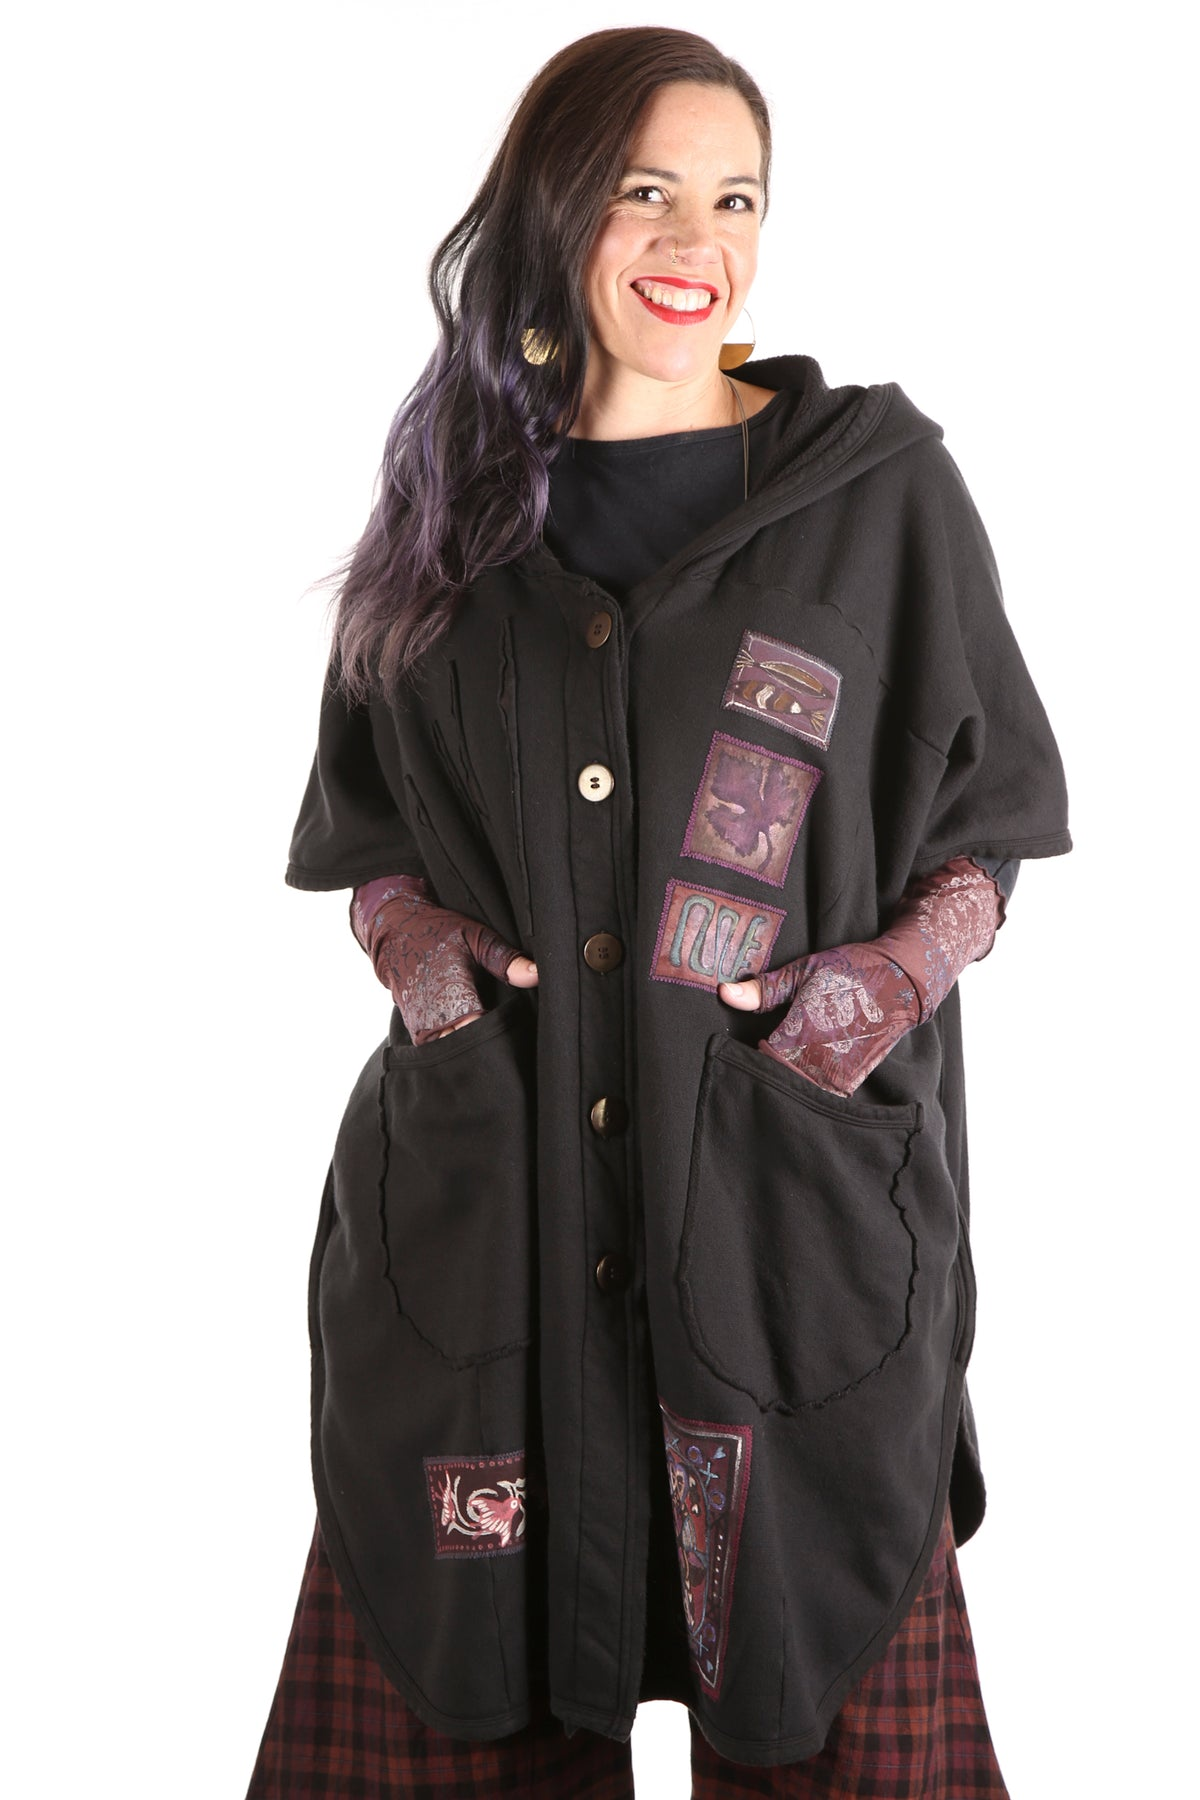 5258 -Raw Edge Hooded Cape - Black-Whimsy Mix Patched #1 OOAK